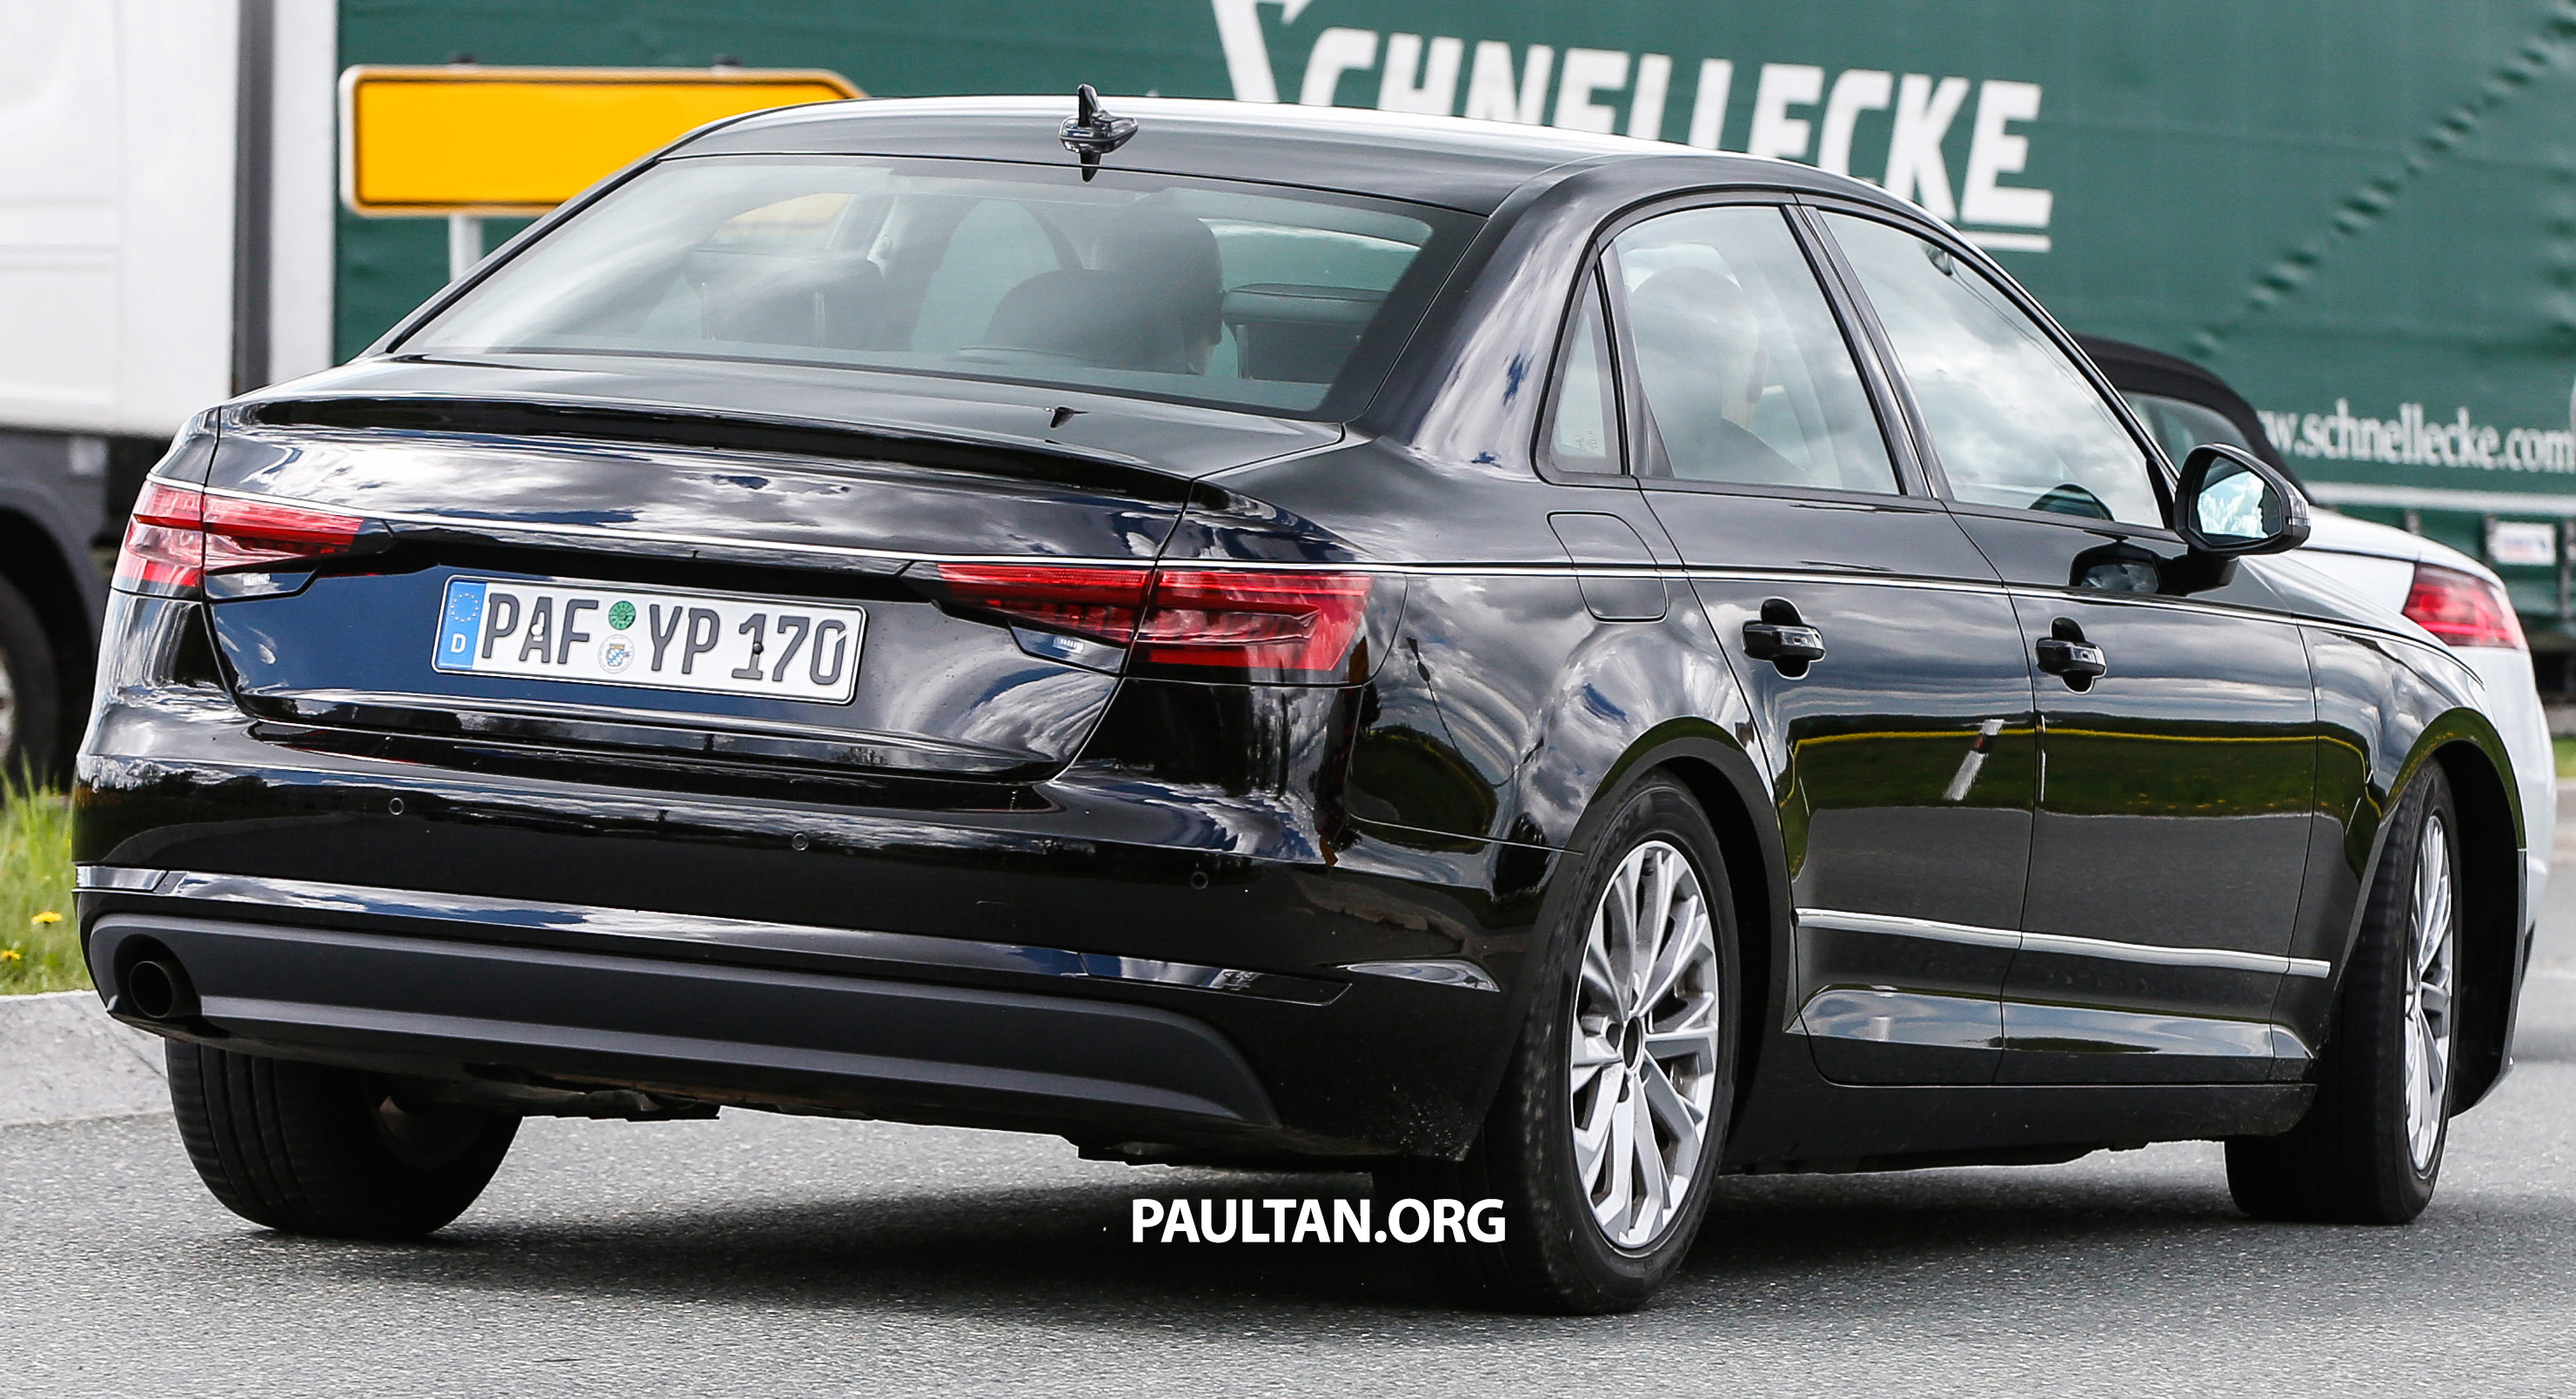 Spyshots B9 Audi A4 Caught Without Camouflage Image 347325